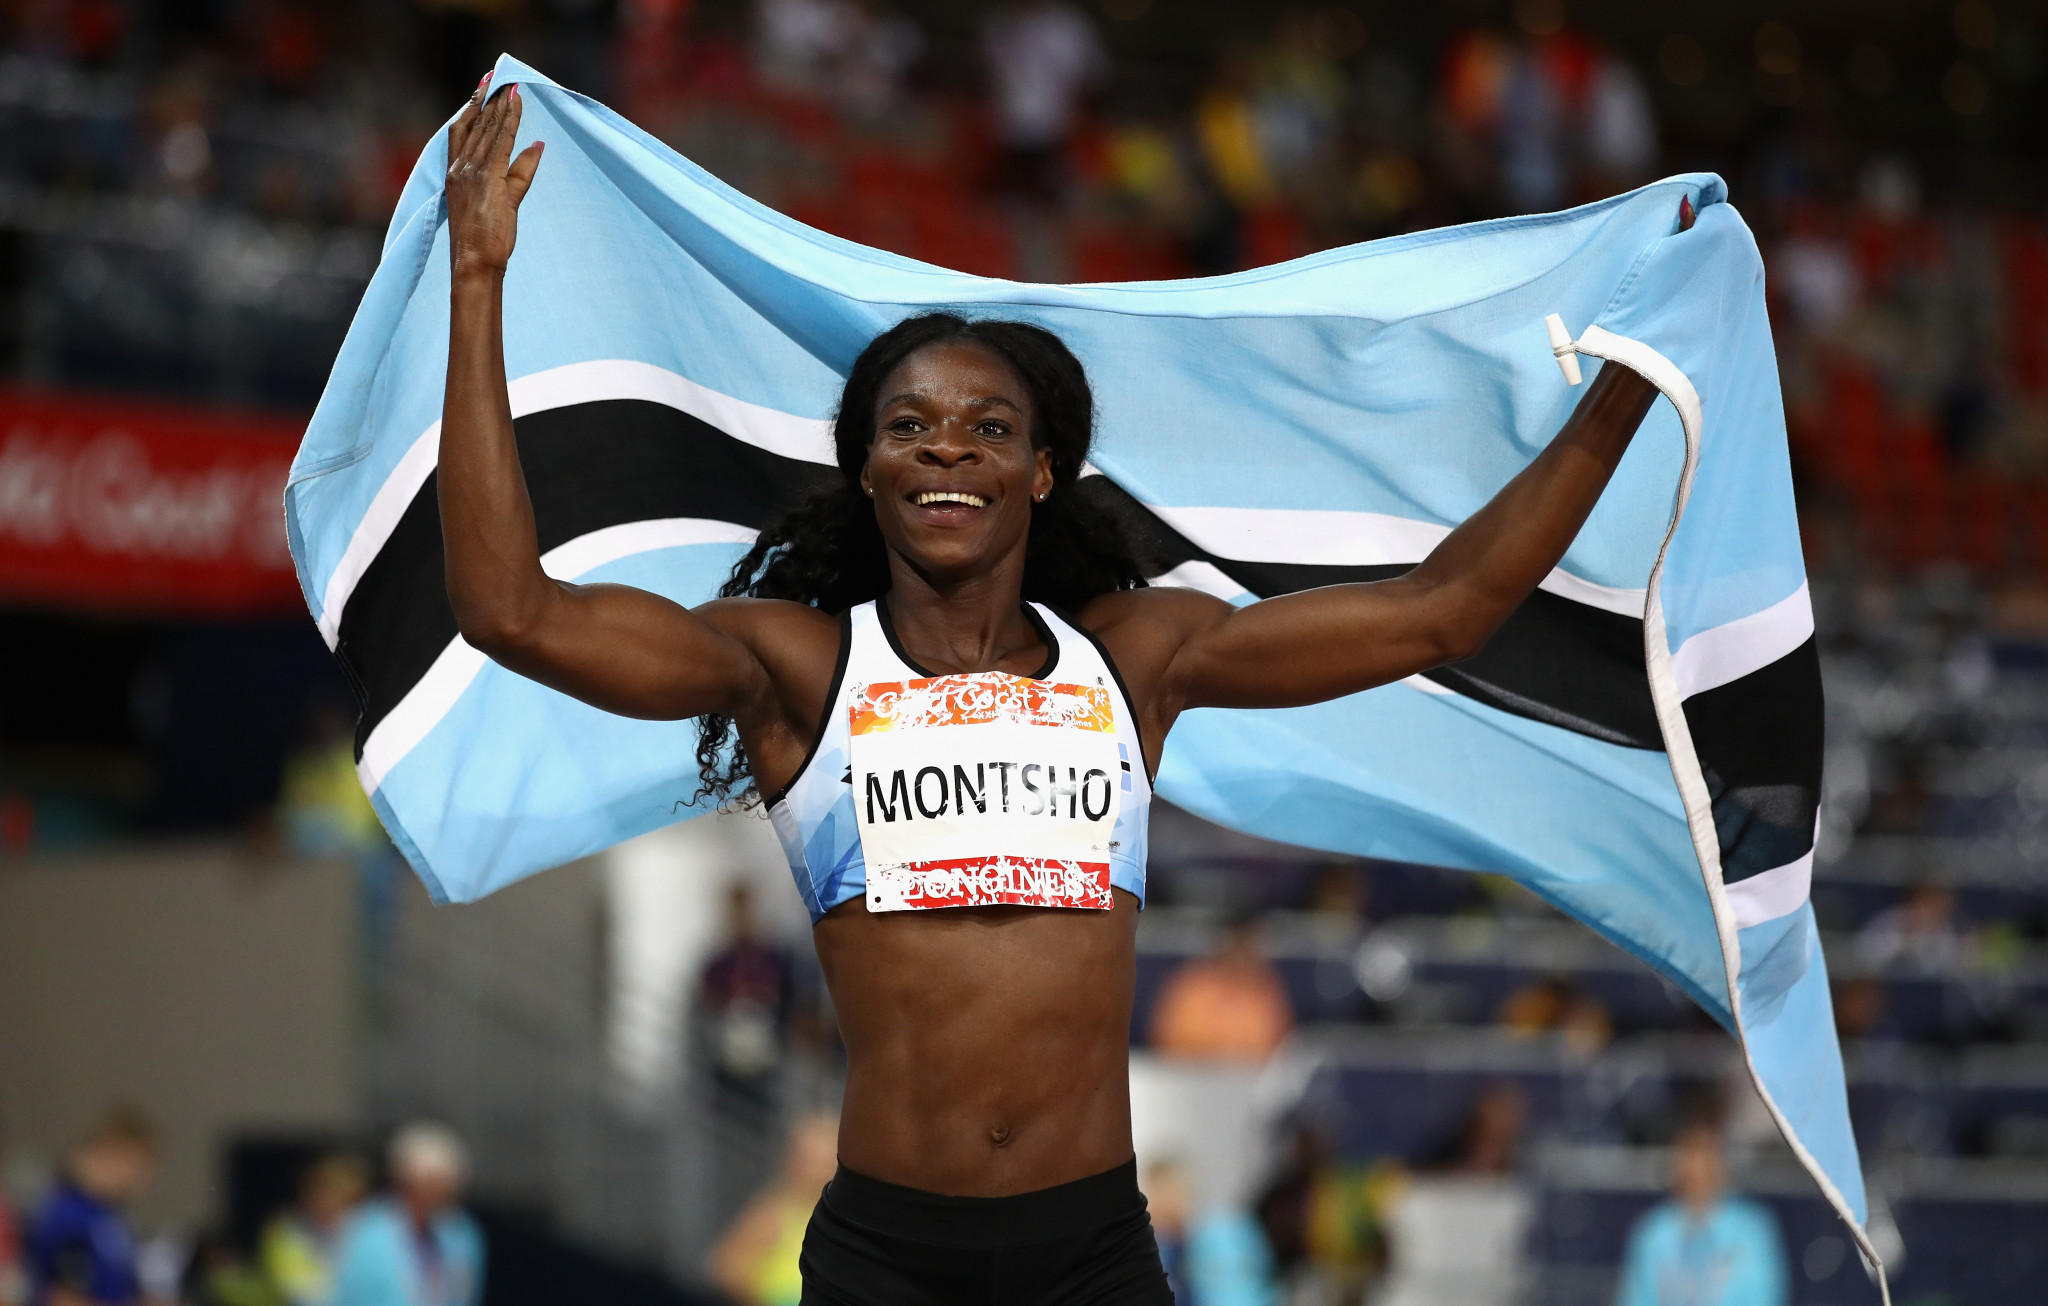 Drugs cheat Montsho puts Glasgow 2014 disgrace behind her to regain 400m title at Gold Coast 2018